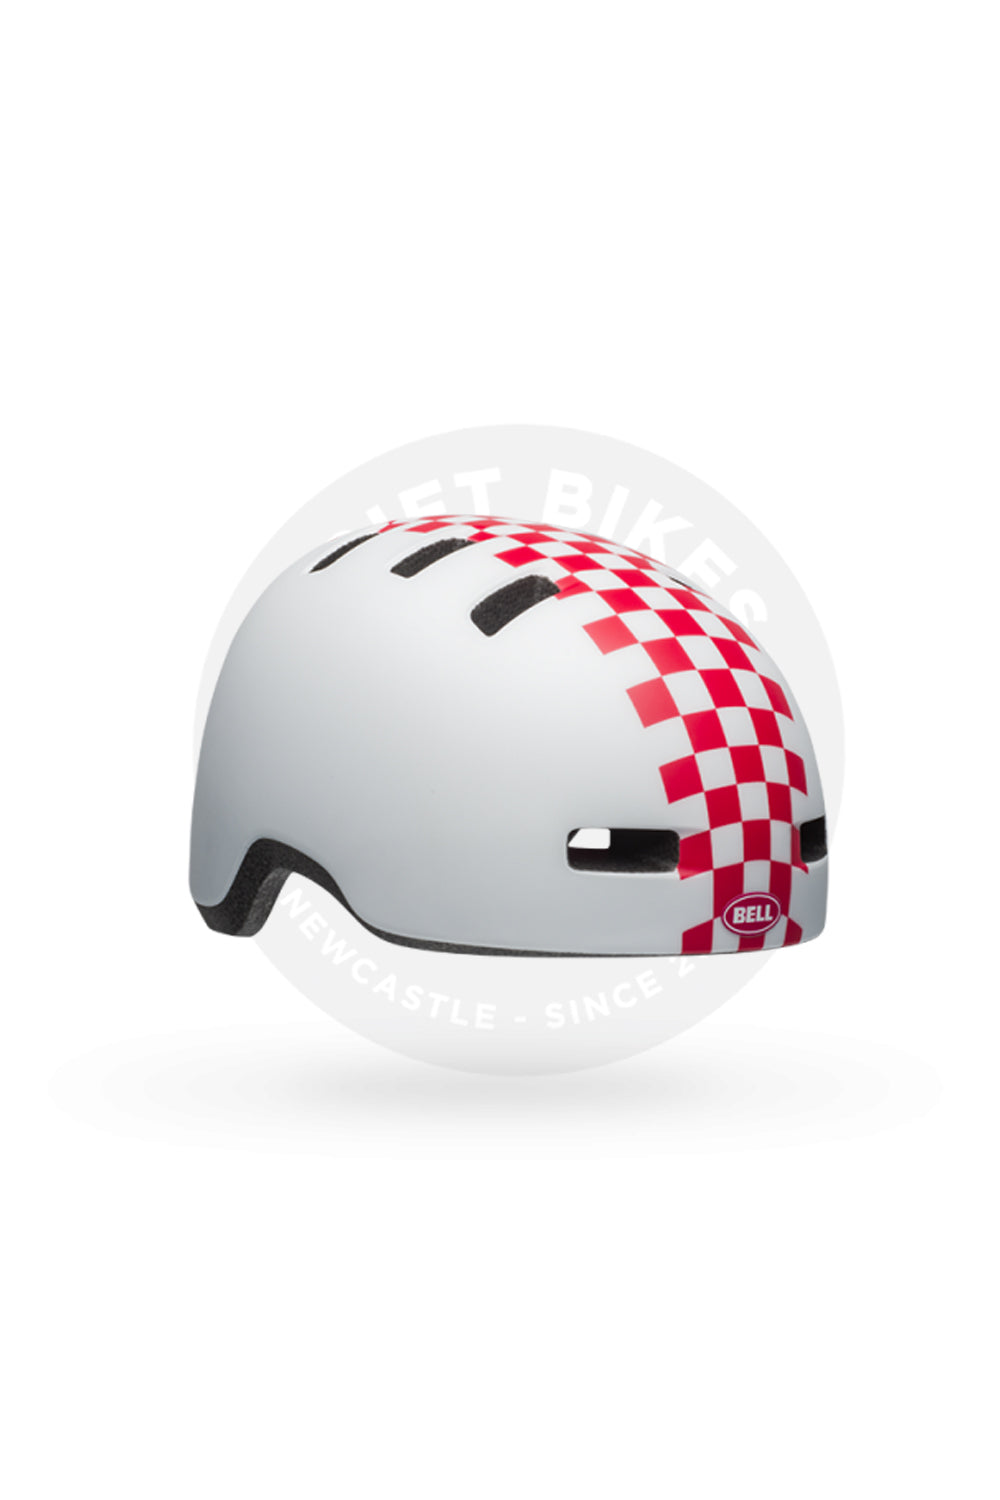 CHECKERS MATTE WHITE/ PINK